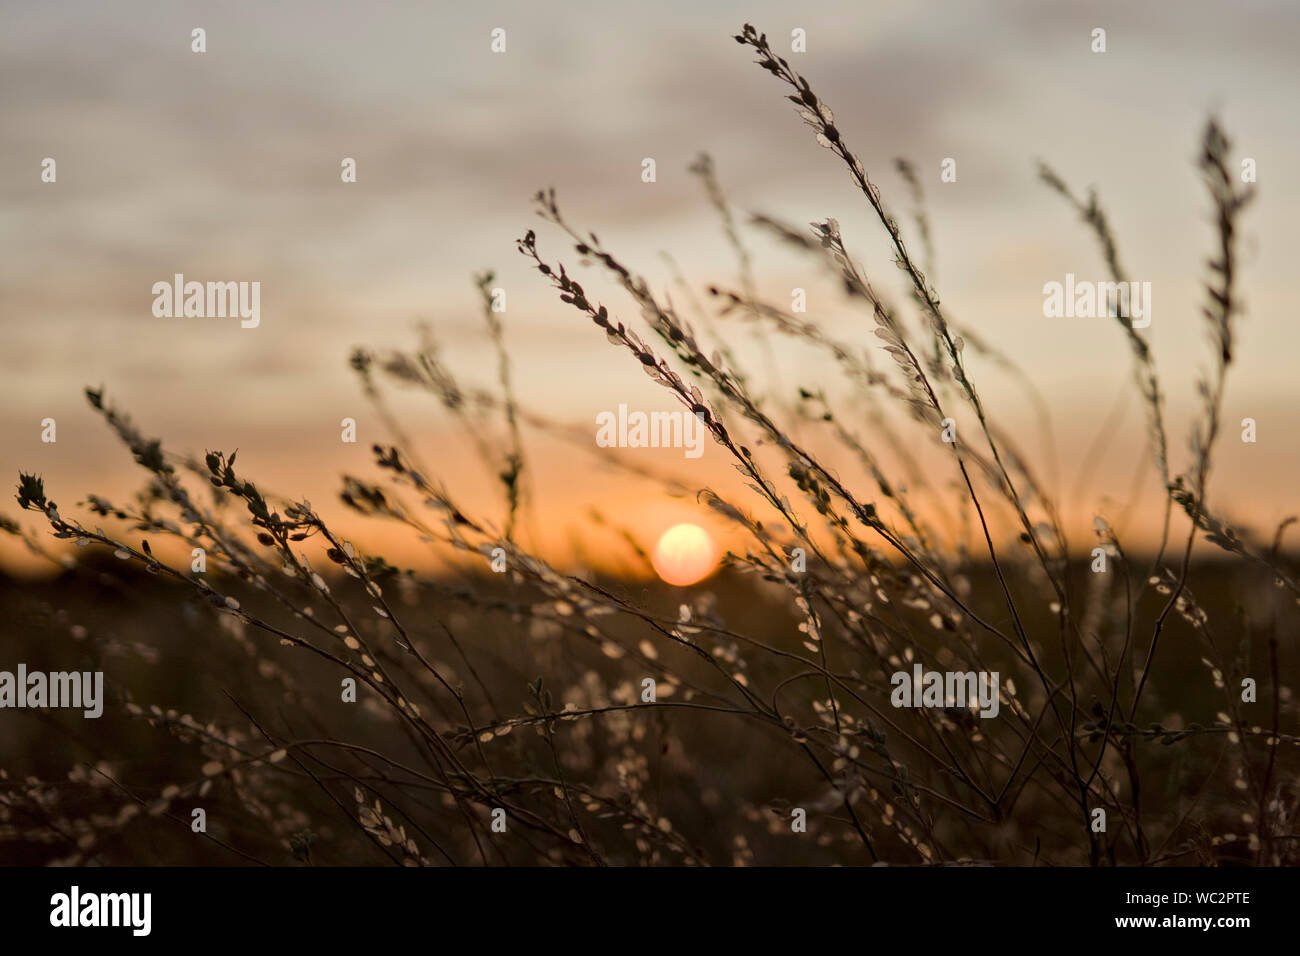 wild grass on meadow on summer sunset sky background, natural environment landscape Stock Photo